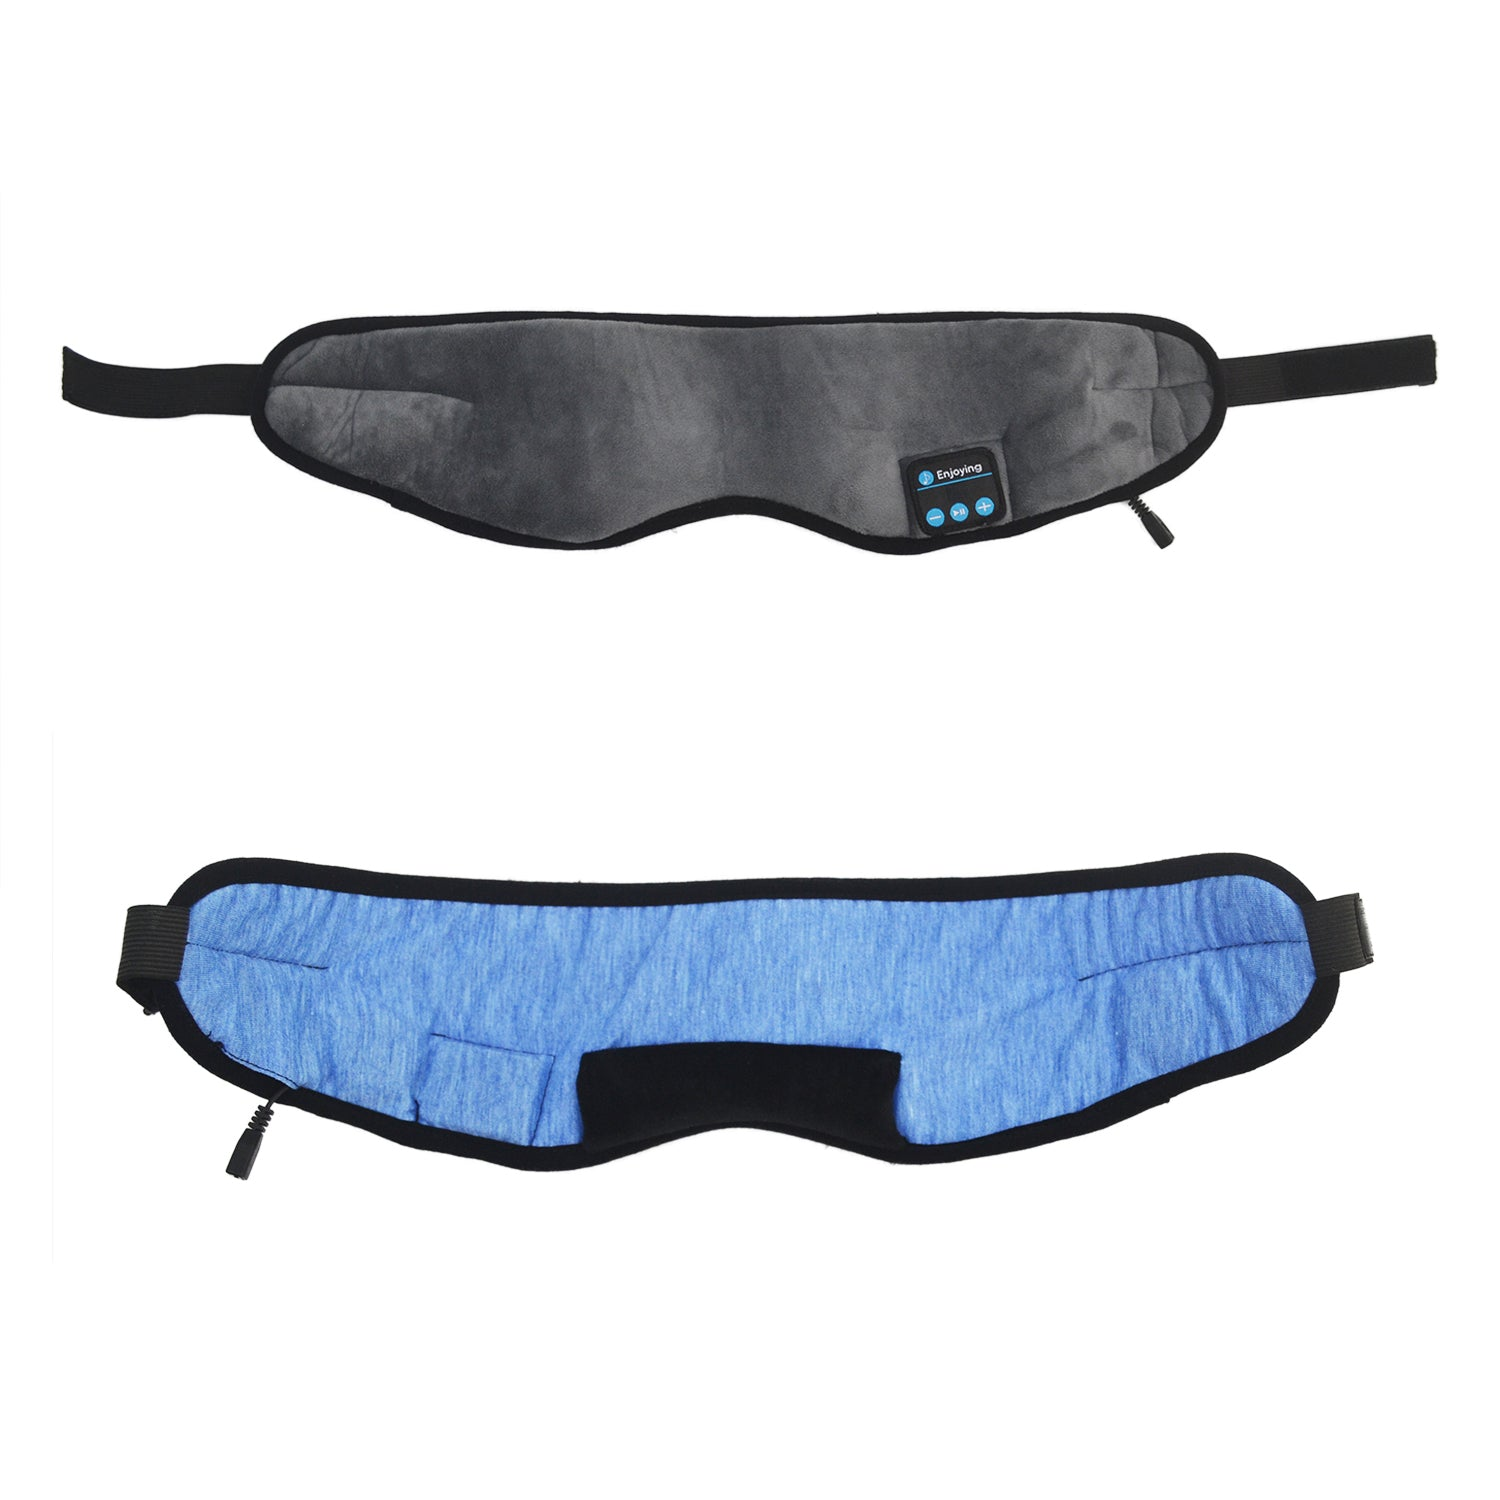 1cc768f5f Bluetooth Sleeping Eye Mask Headphones Blindfold Music Sleep Eye Shades  Headset